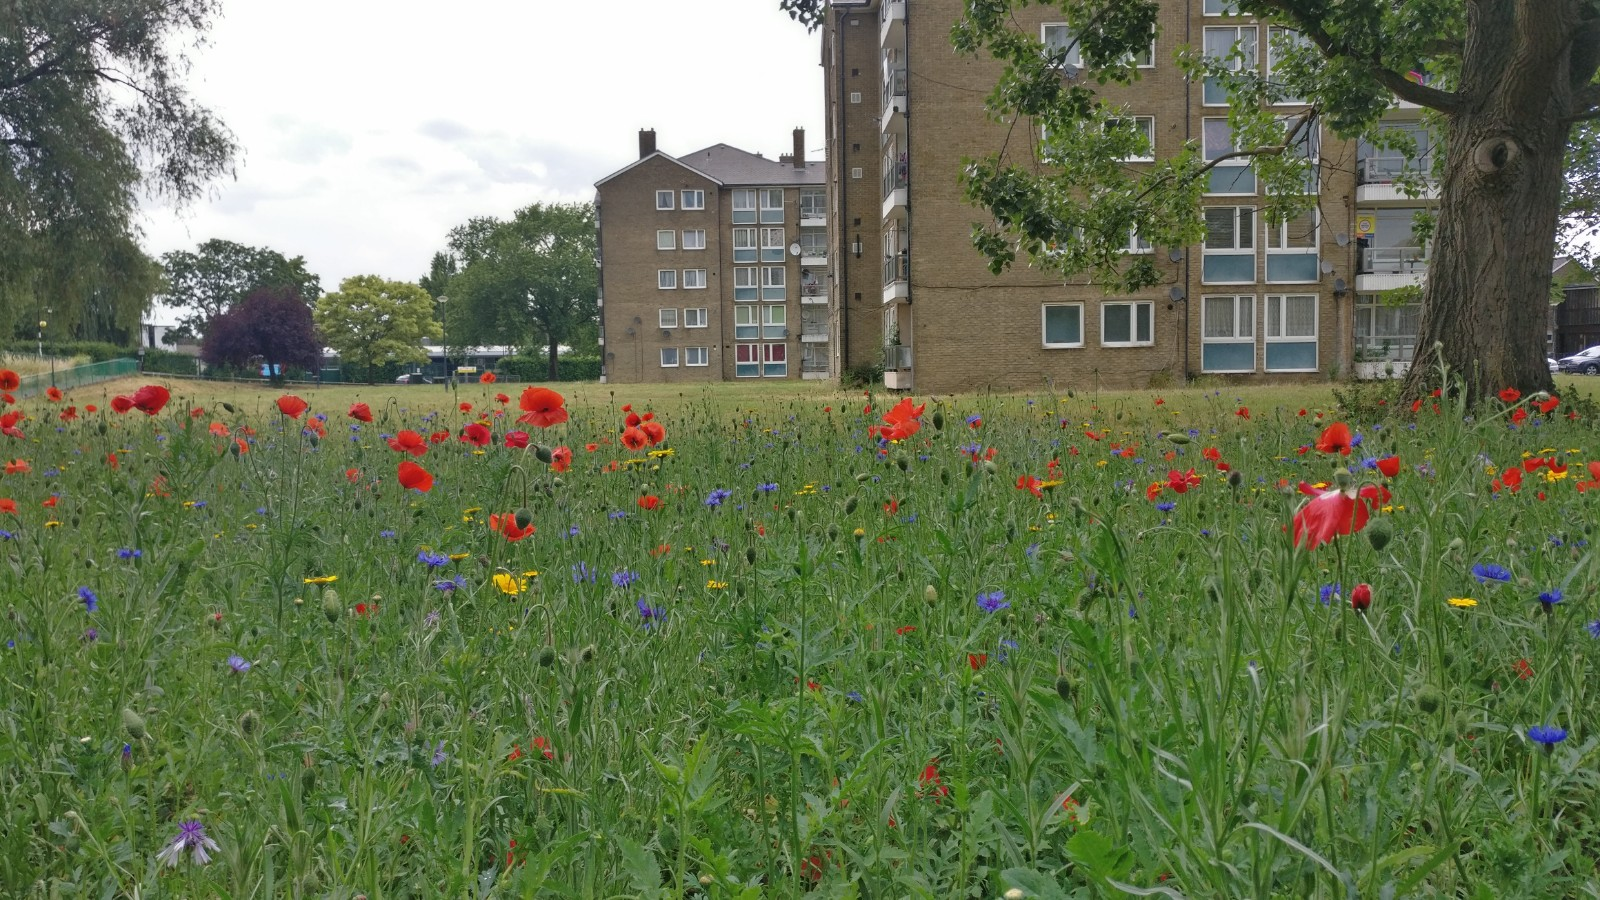 Wildflowers at the Abbey Road estate planted earlier this year